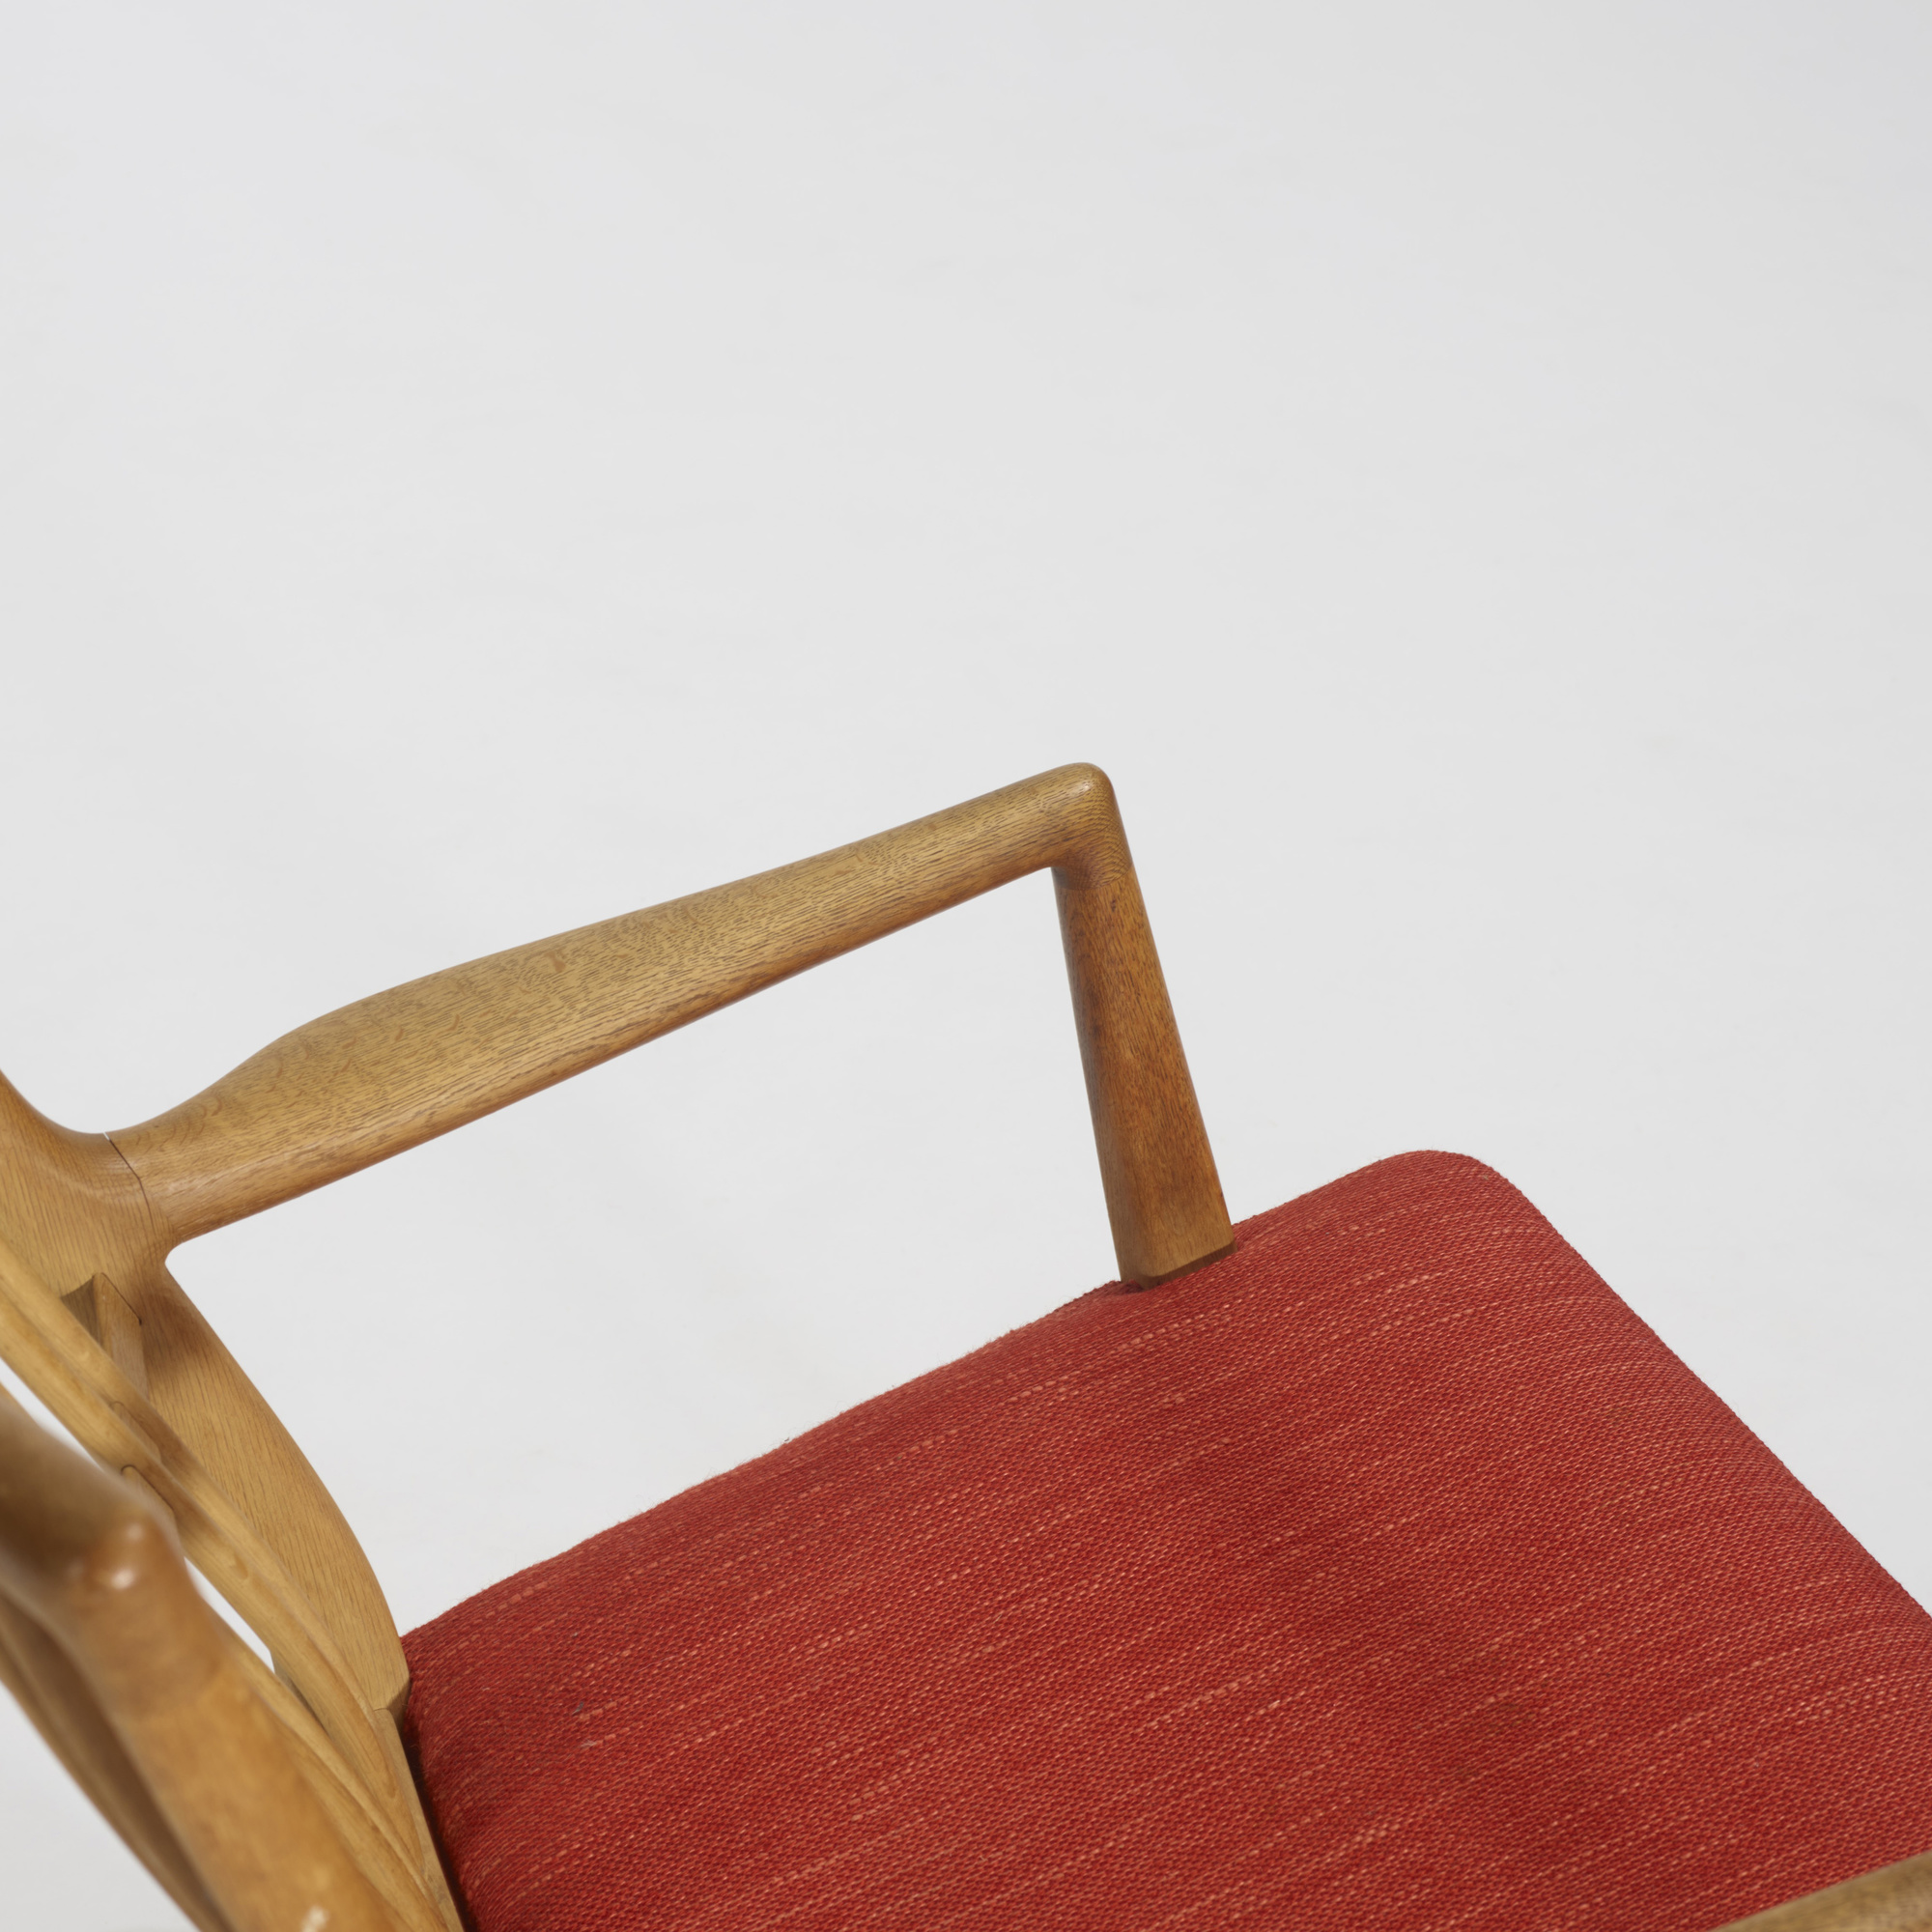 244: Hans J. Wegner / rocking chair (2 of 2)